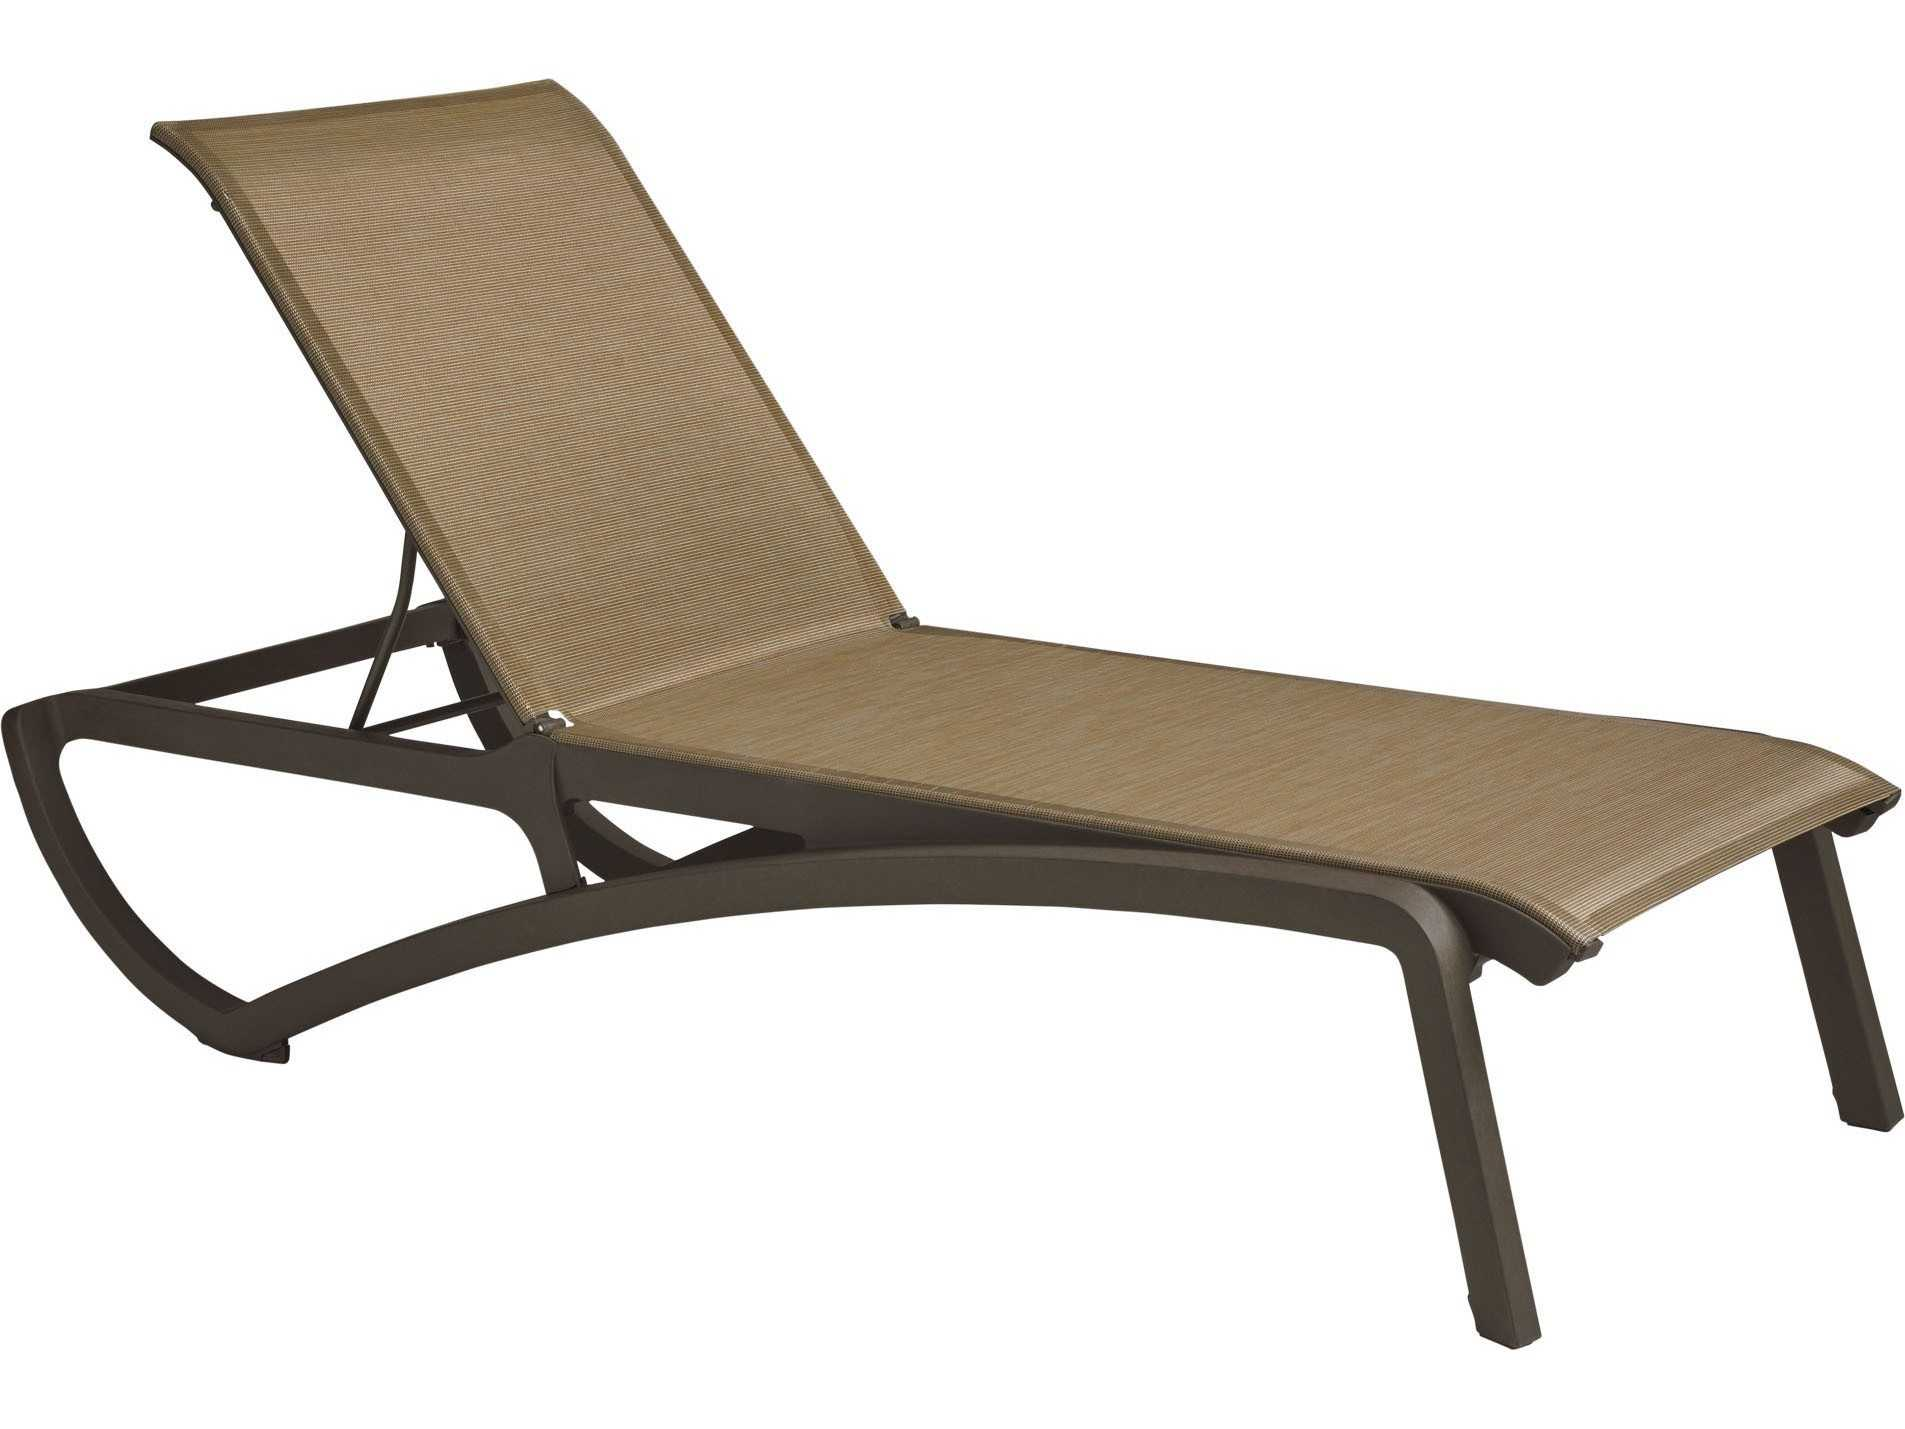 Grosfillex sunset resin sling chaise lounge sold in 2 gxus634599 - Grosfillex chaise longue ...